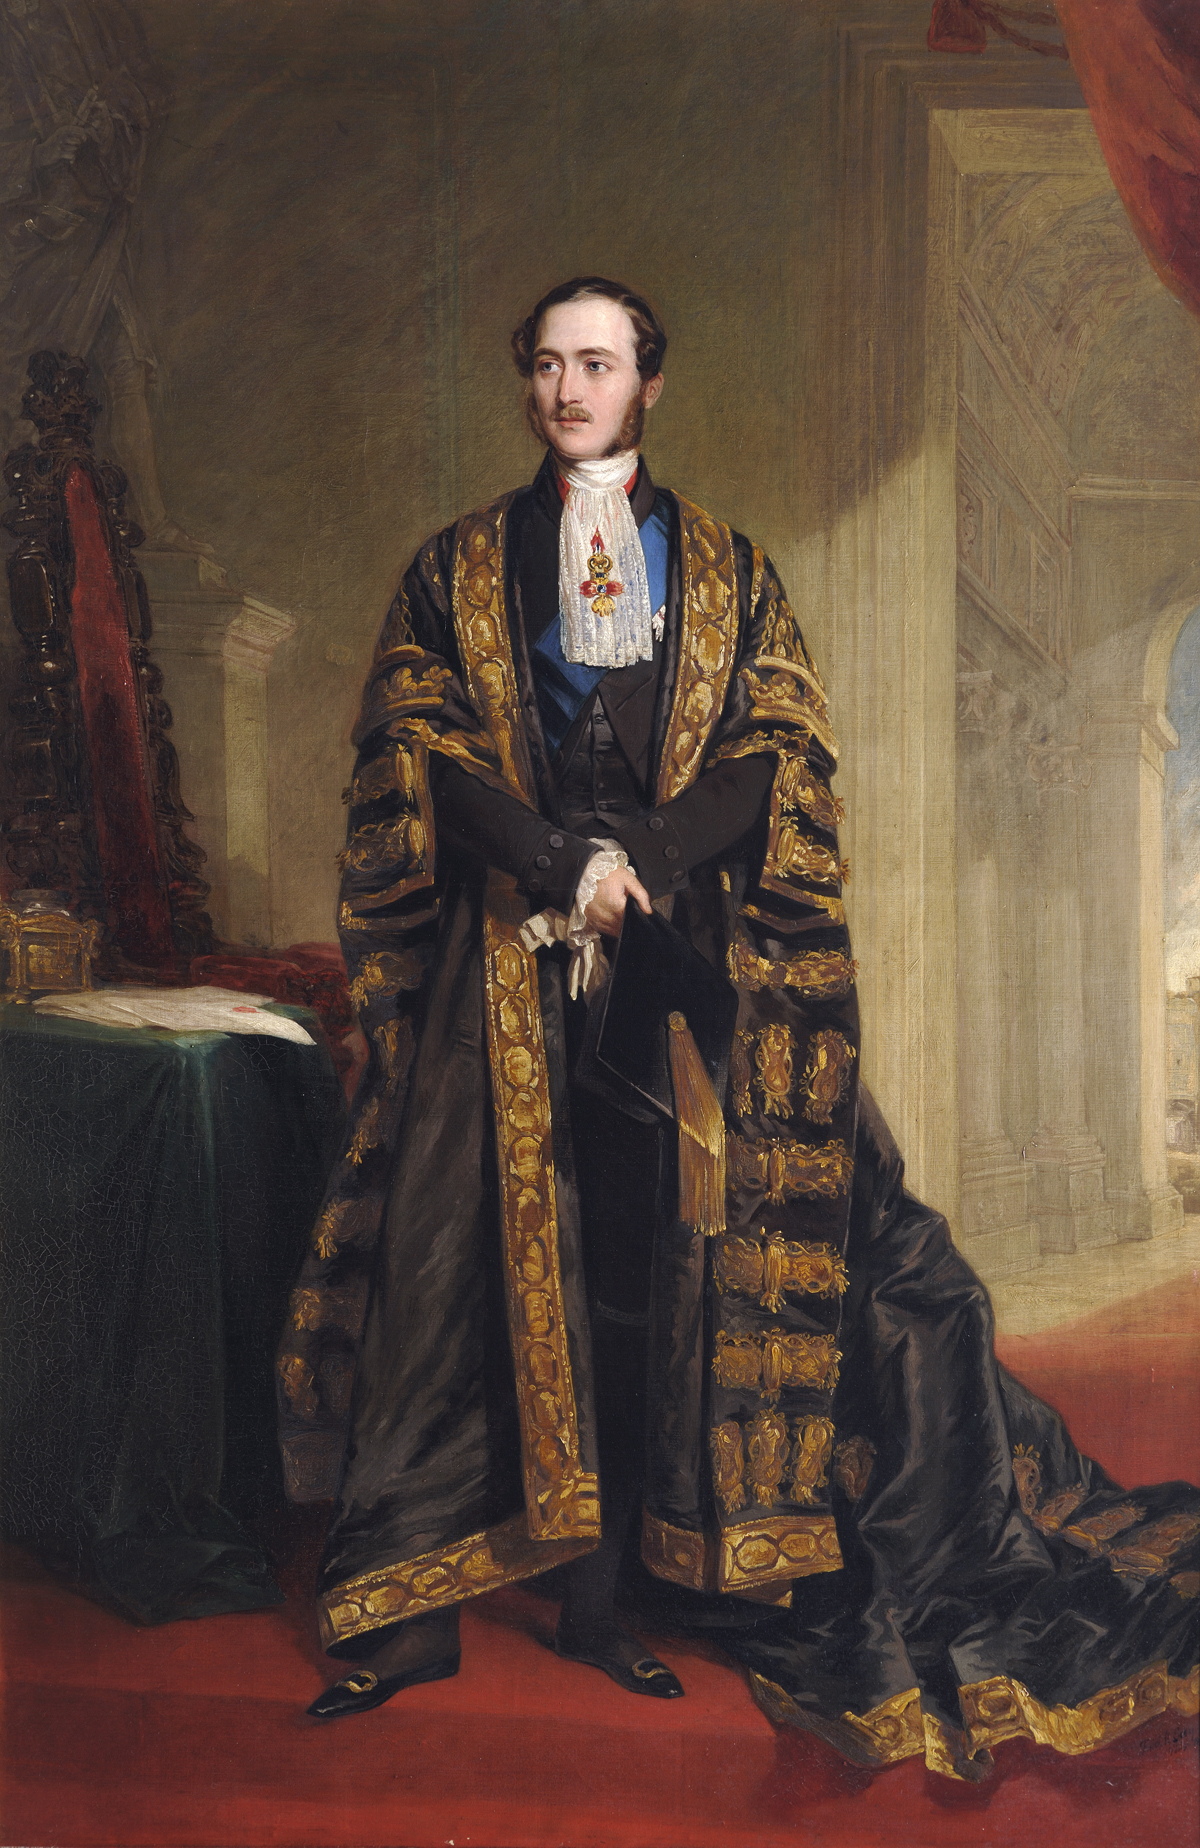 Prince Albert by Frederick Richard Say - Royal Wedding 19th May